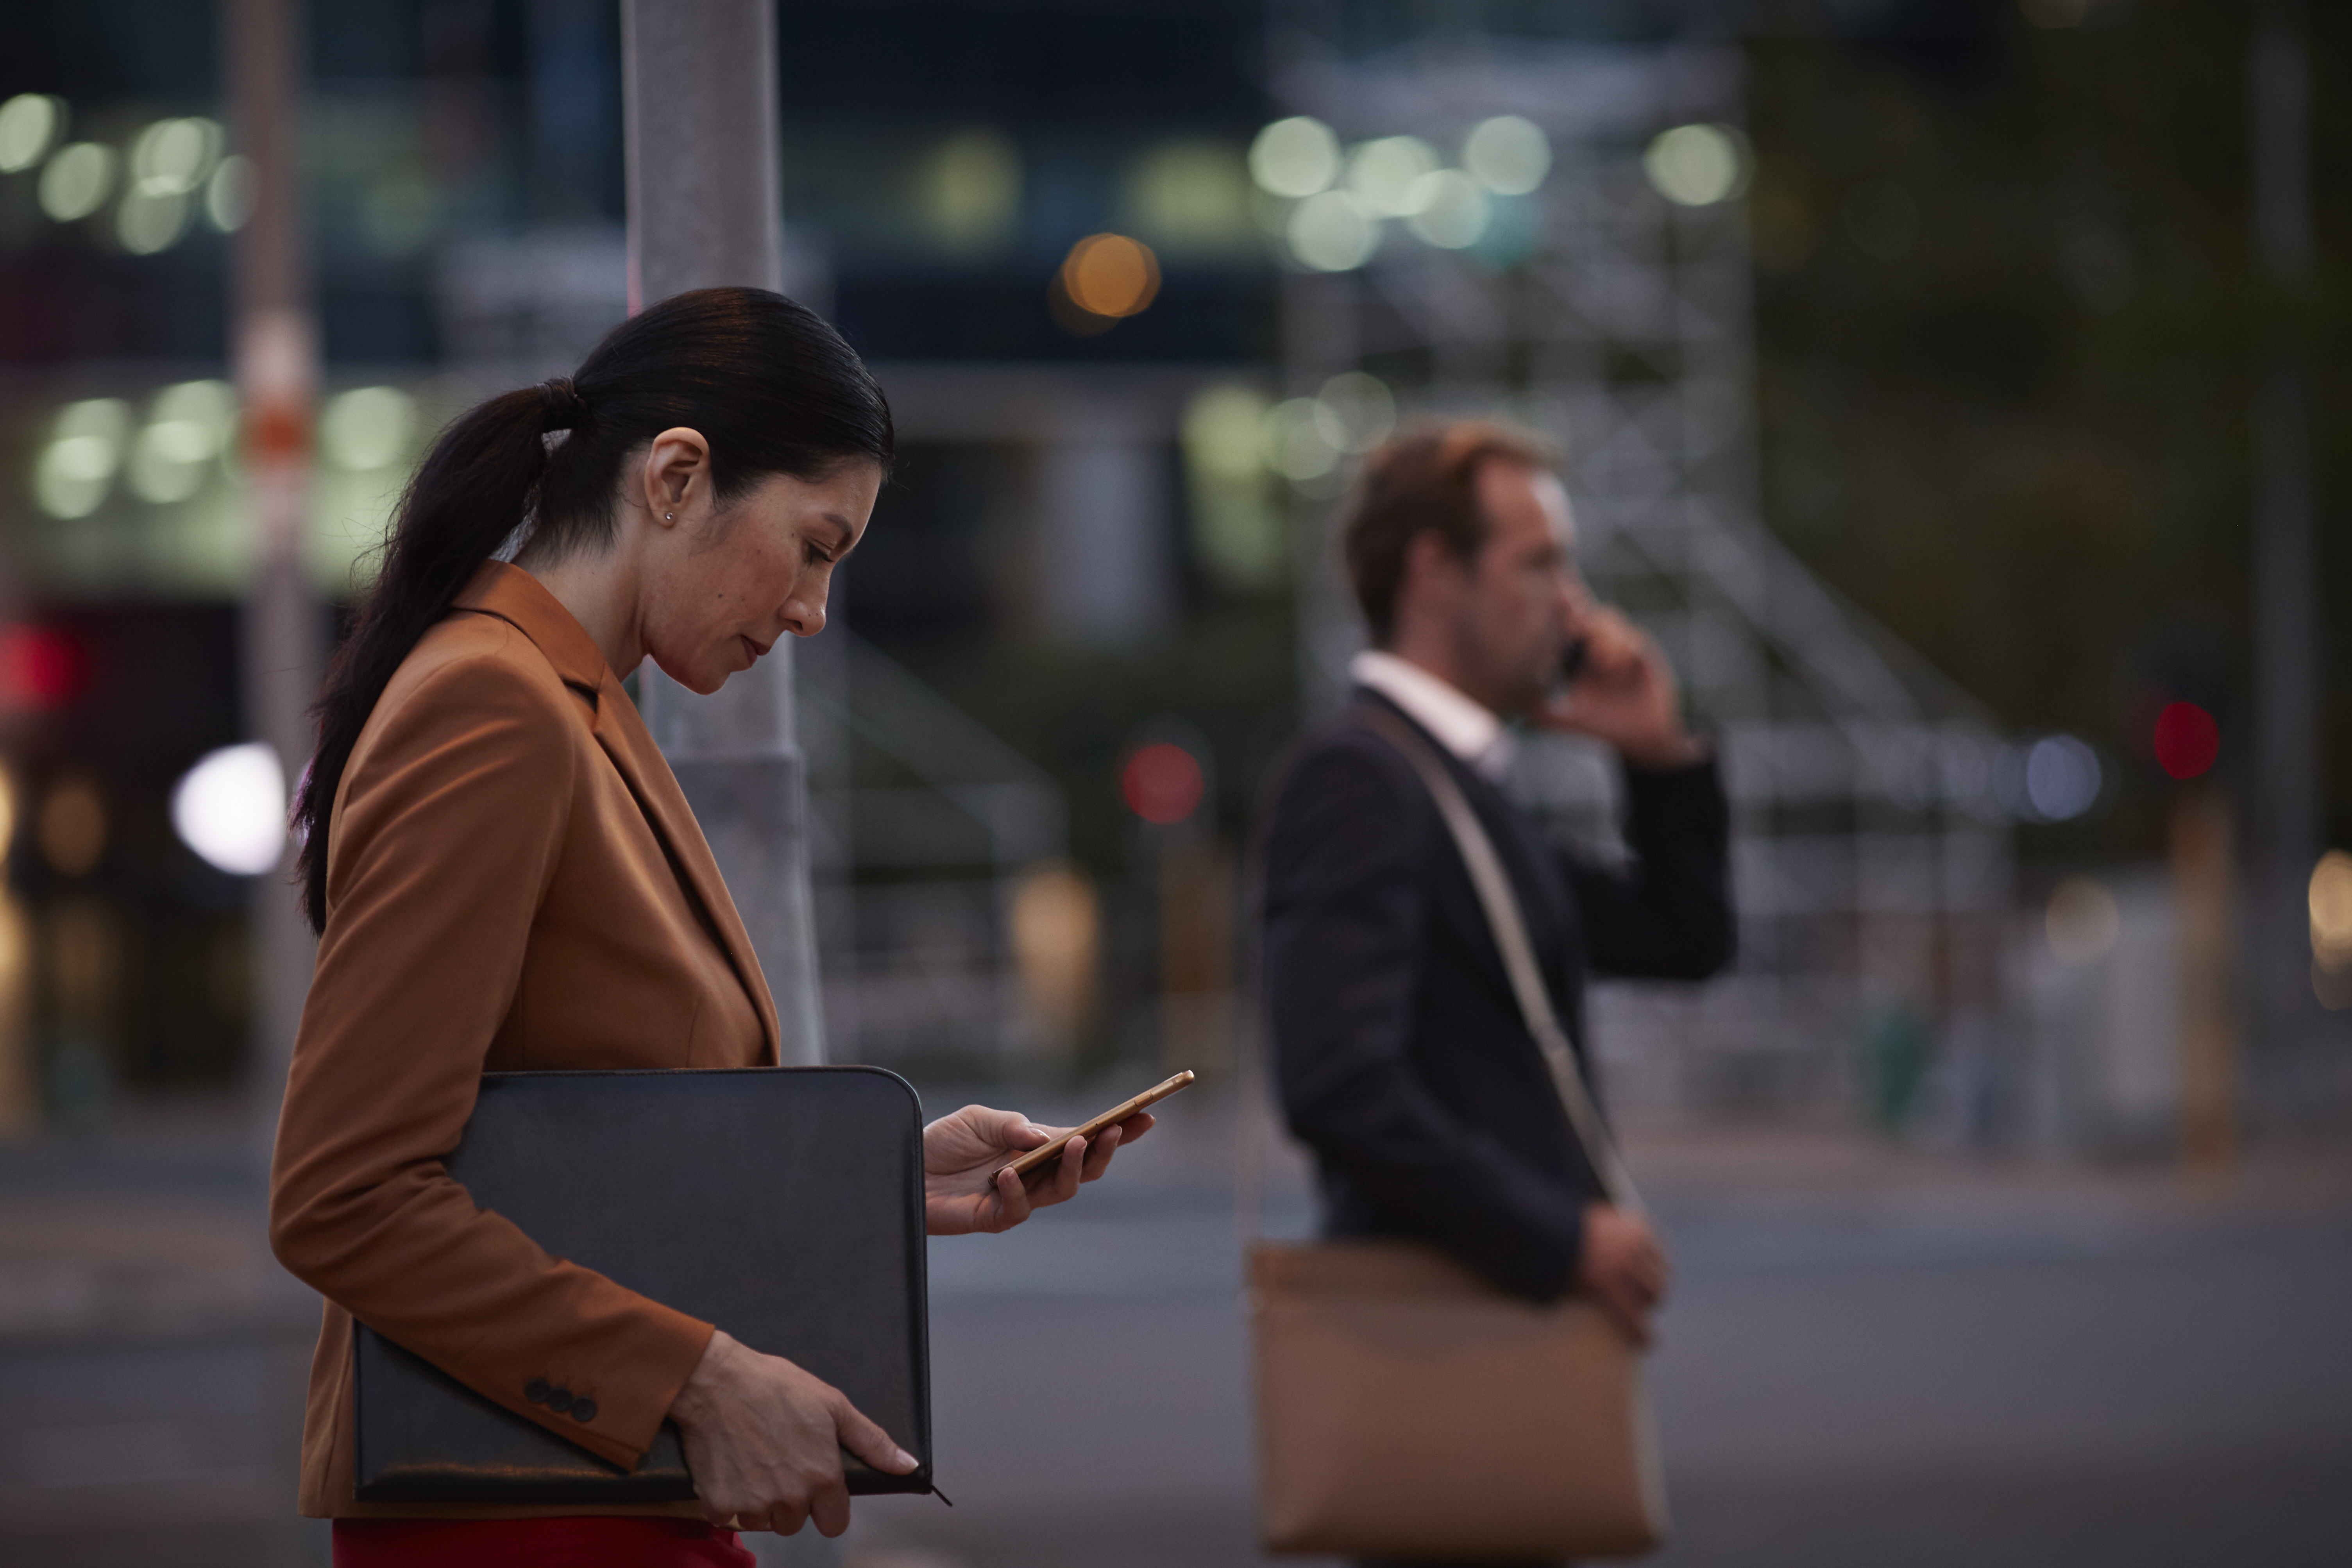 Businesswoman on street looking at phone, at night